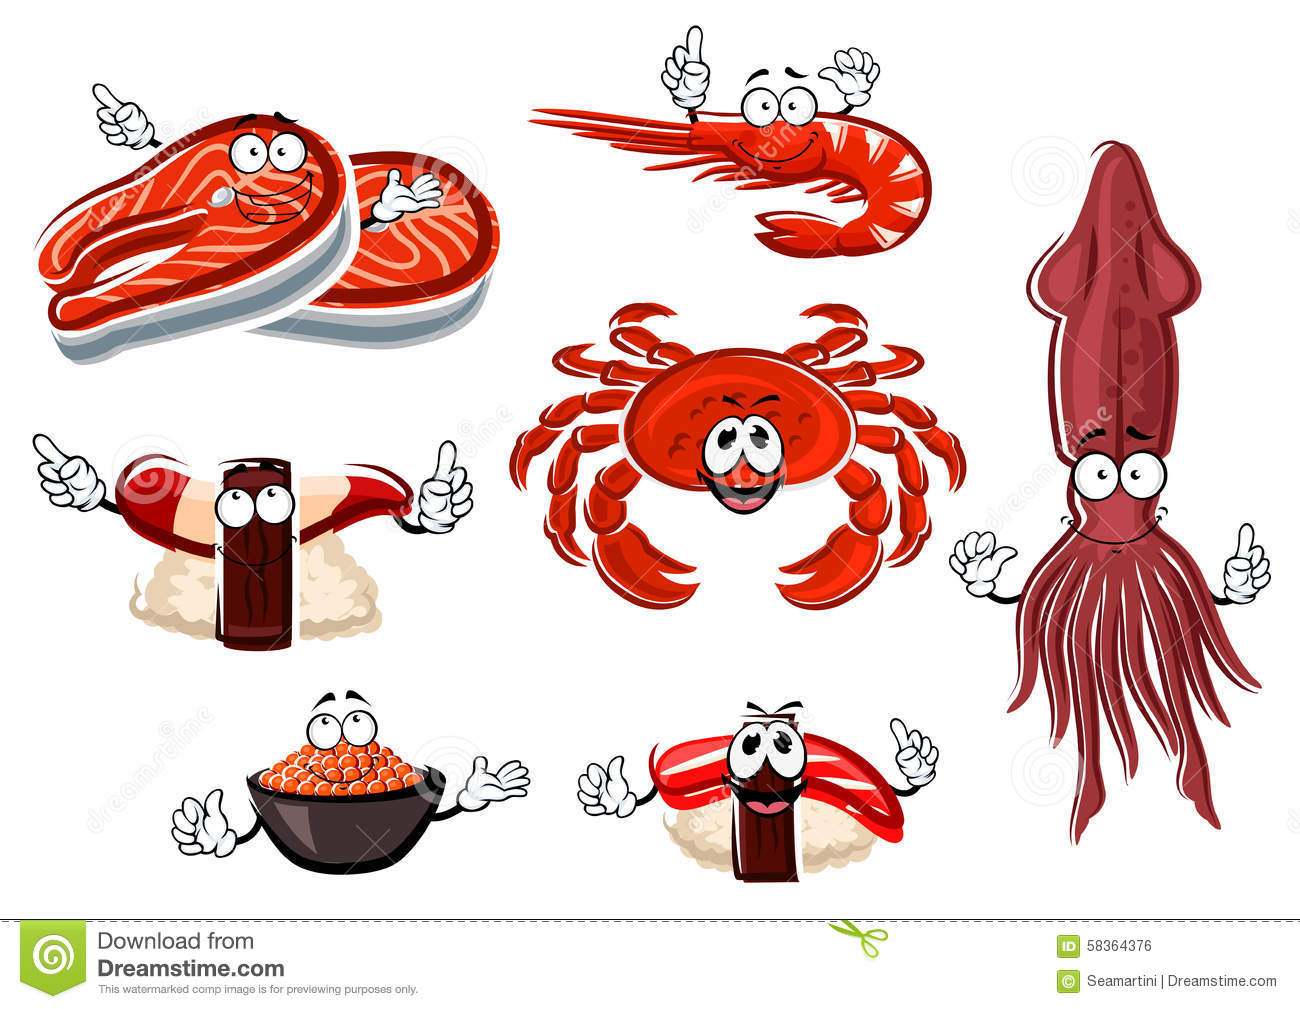 Cartoon Seafood And Animals Characters Stock Vector - Image: 58364376